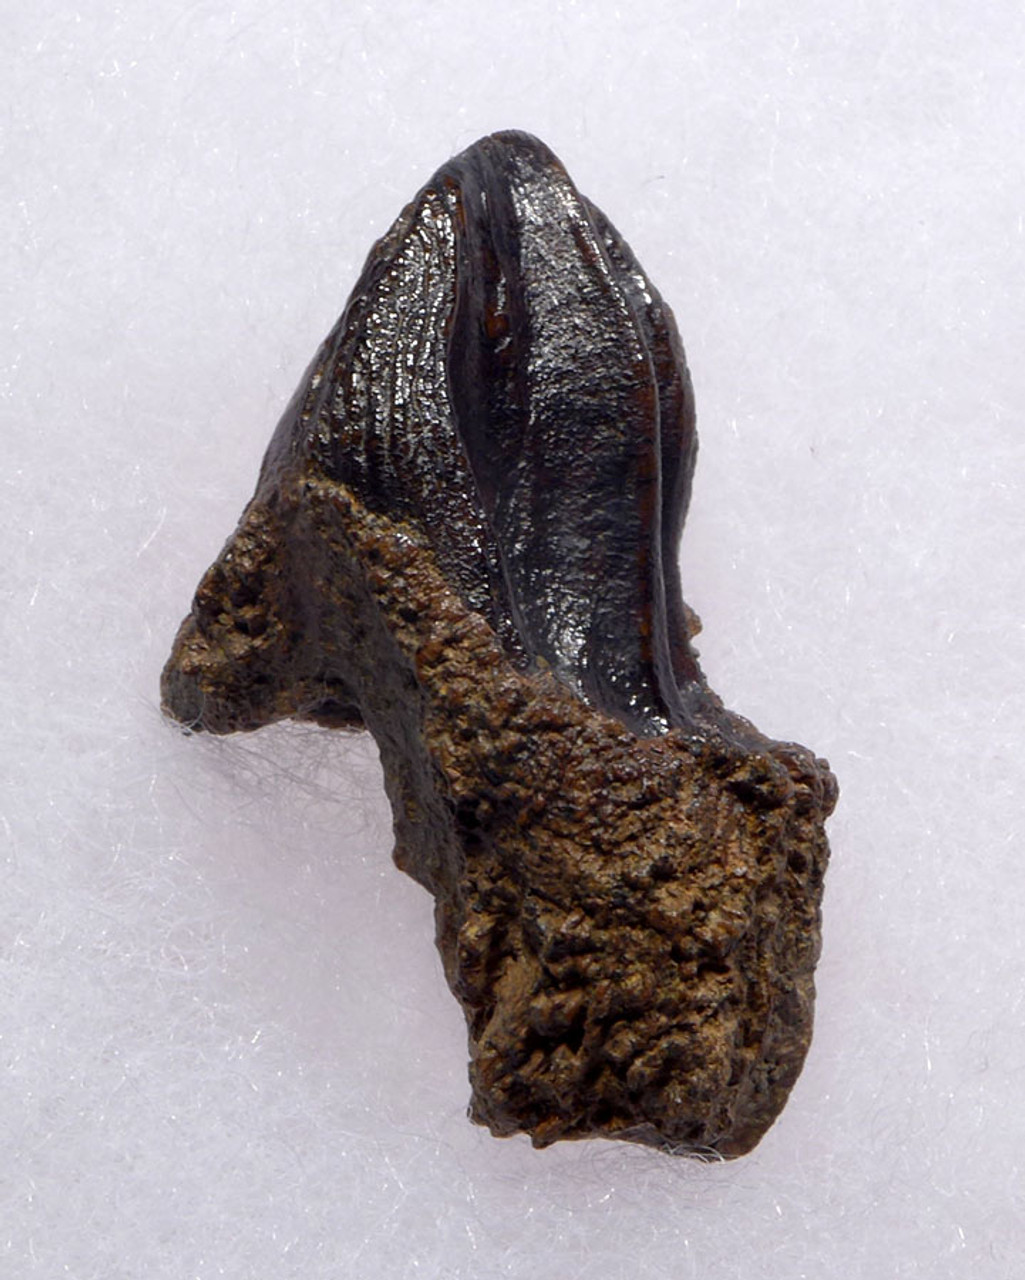 FINEST LARGE TRICERATOPS DINOSAUR TOOTH WITH UNWORN CROWN AND ROOT *DT19-039